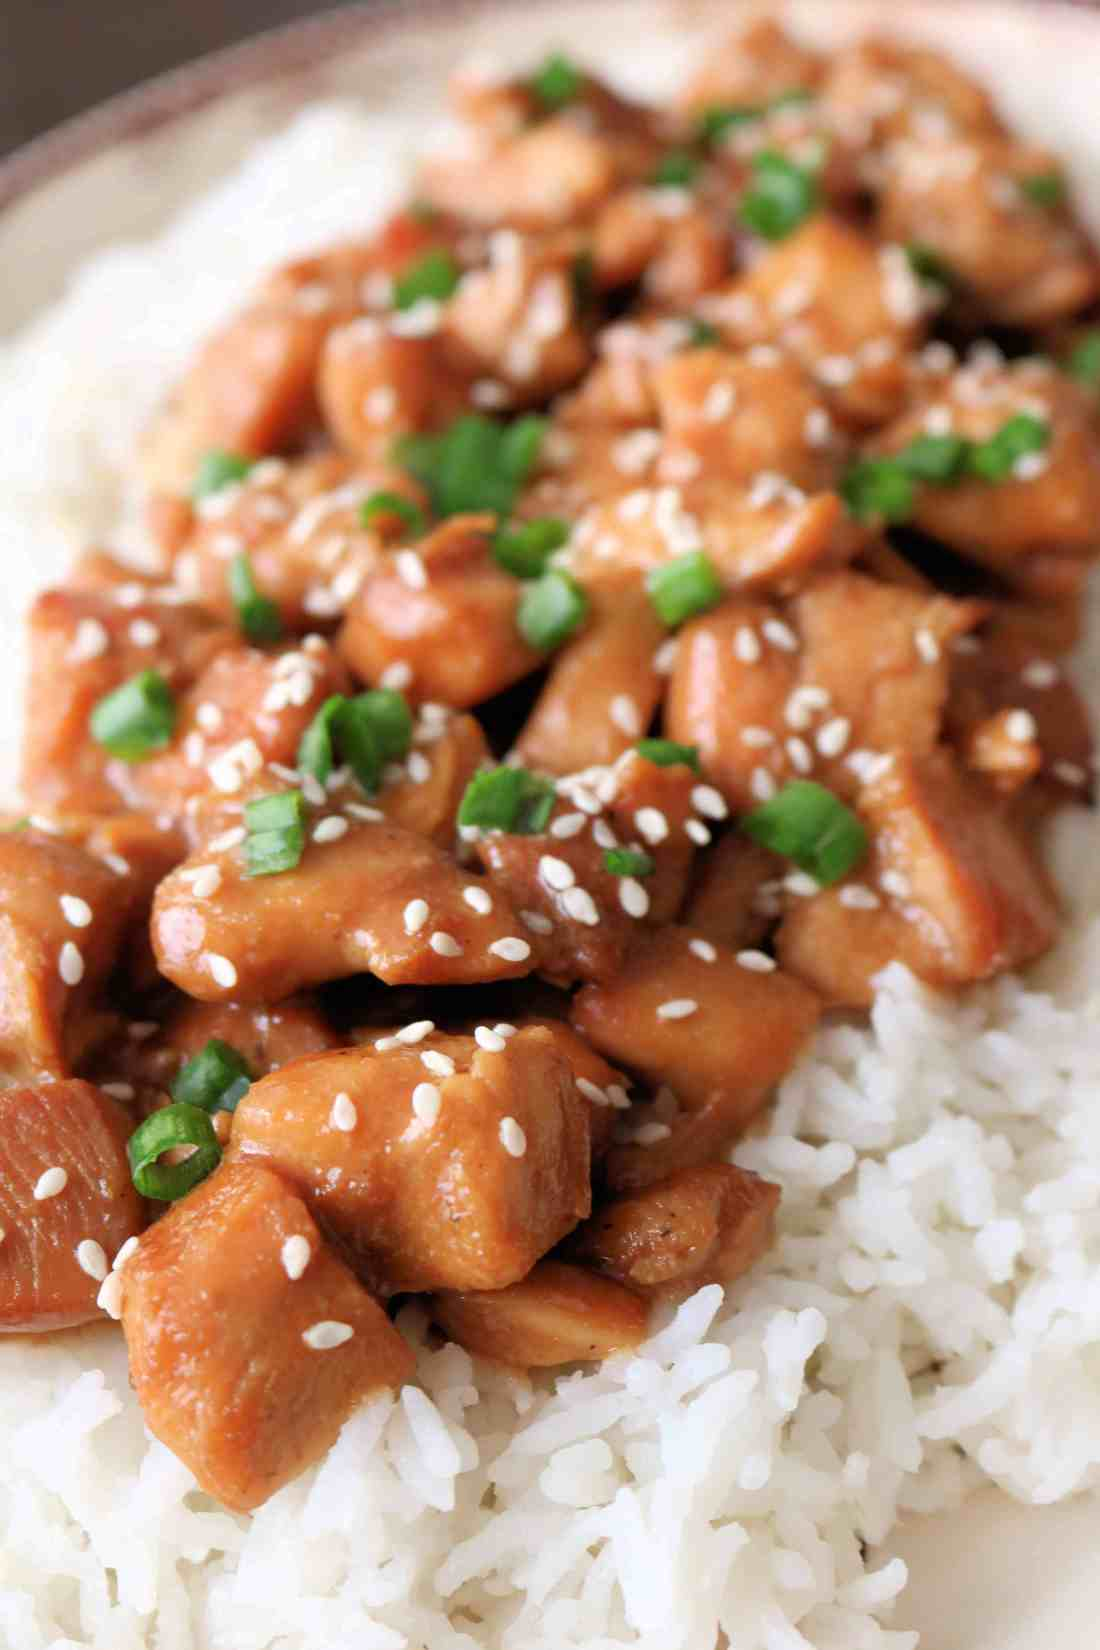 Try my healthy and delicious slow cooker honey sesame chicken for an easy weeknight meal! It only takes 2 hours in the crockpot and tastes even better than takeout!#chicken#chickenrecipe#dinner